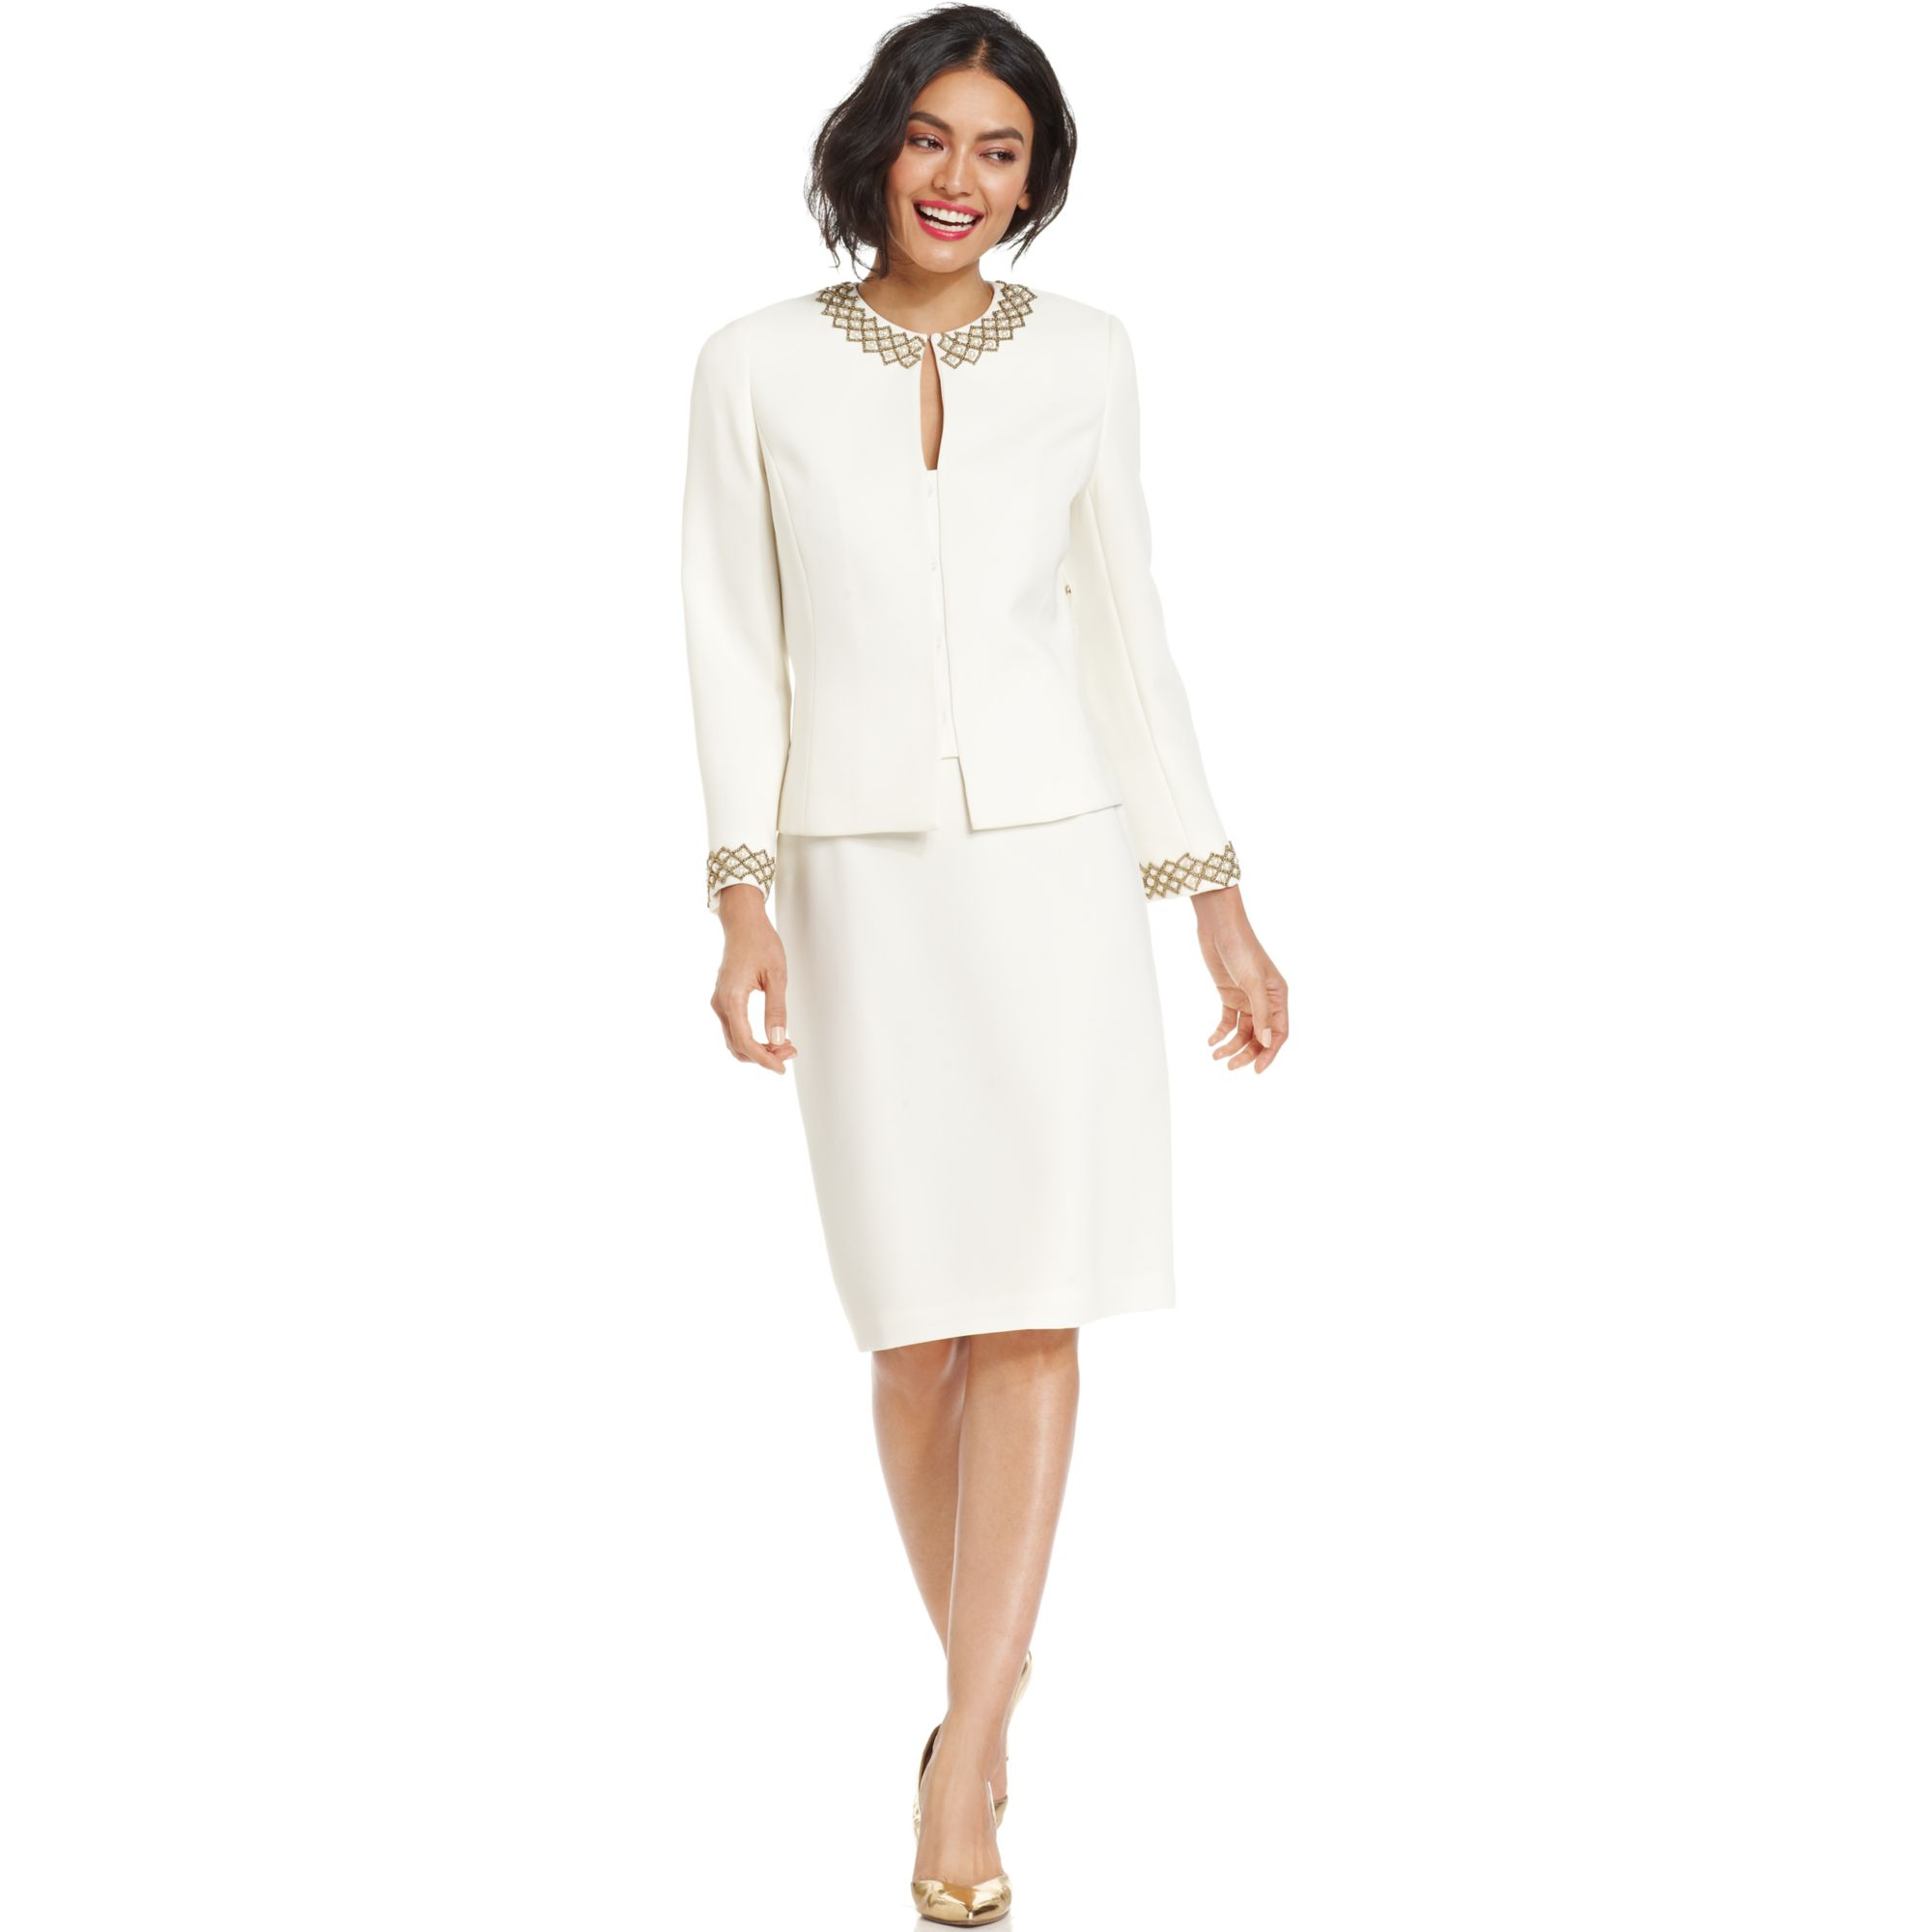 9bbf935c6197 Tahari Asl Collarless Embellished Beaded Skirt Suit in White - Lyst